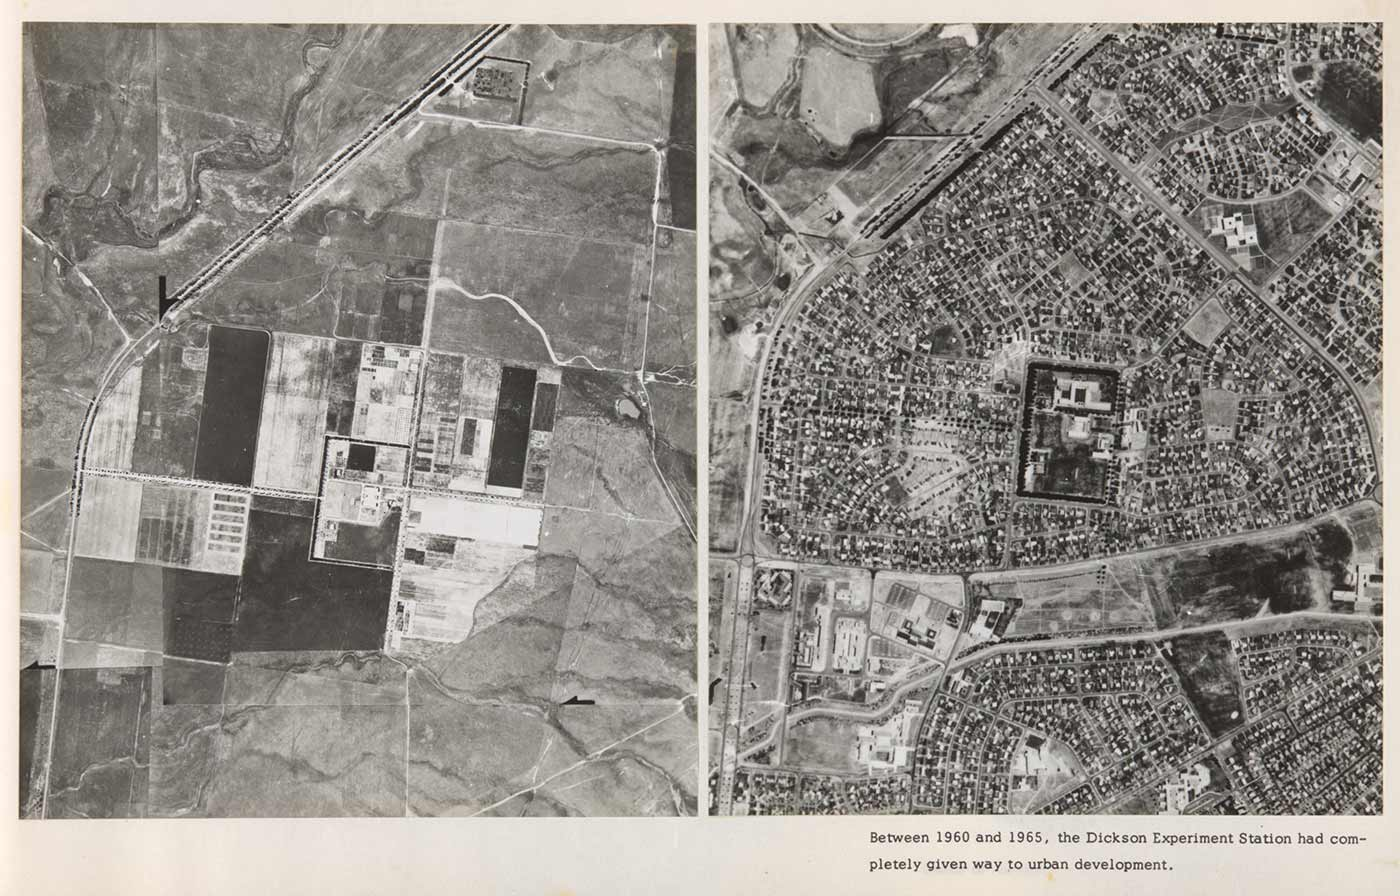 Two black and white photos. The photo on the left shows an aerial view of the undeveloped paddocks of Dickson Experiment Station. The photo on the right shows an aerial view of the suburbs of Downer, Watson and Dickson and has a caption below which reads: 'Between 1960 and 1965, the Dickson Experiment Station, had completely given way to urban development. - click to view larger image